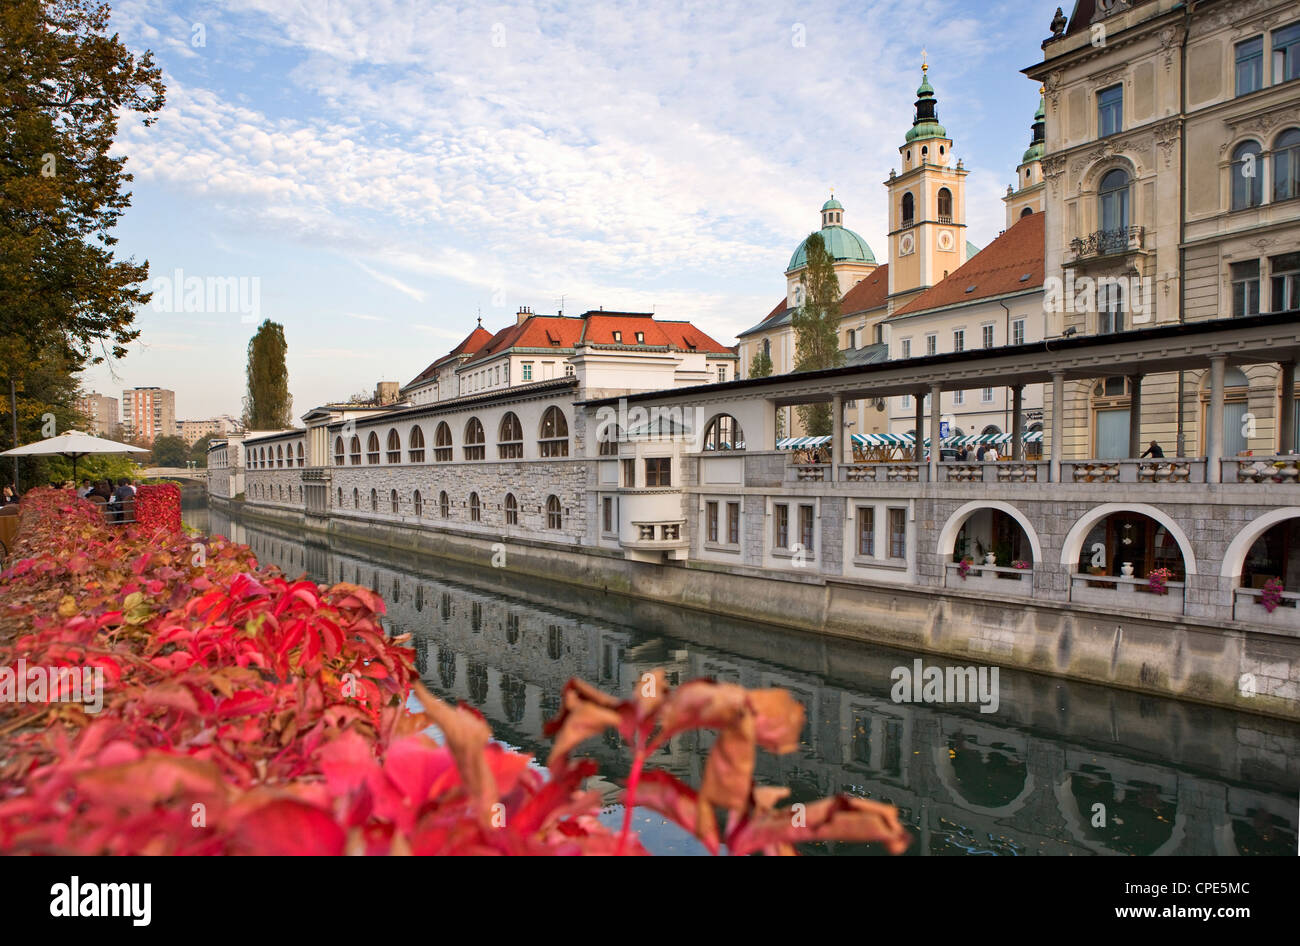 Riverside market halls and the Cathedral of St. Nicholas on the Ljubljanica River, Ljubljana, Slovenia, Europe - Stock Image